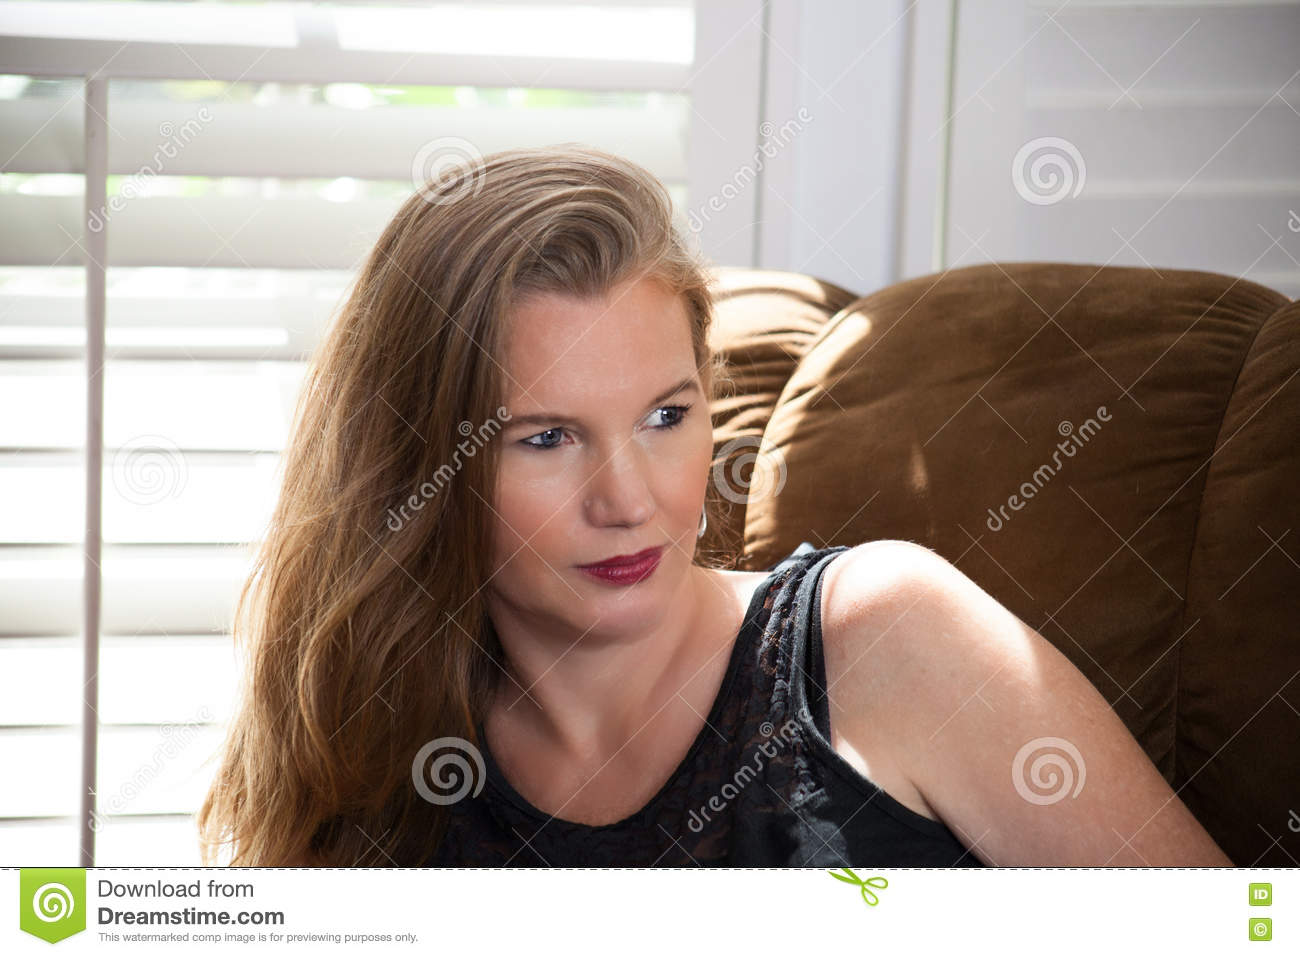 Blonde Female Sitting in front of window looking away from camera.